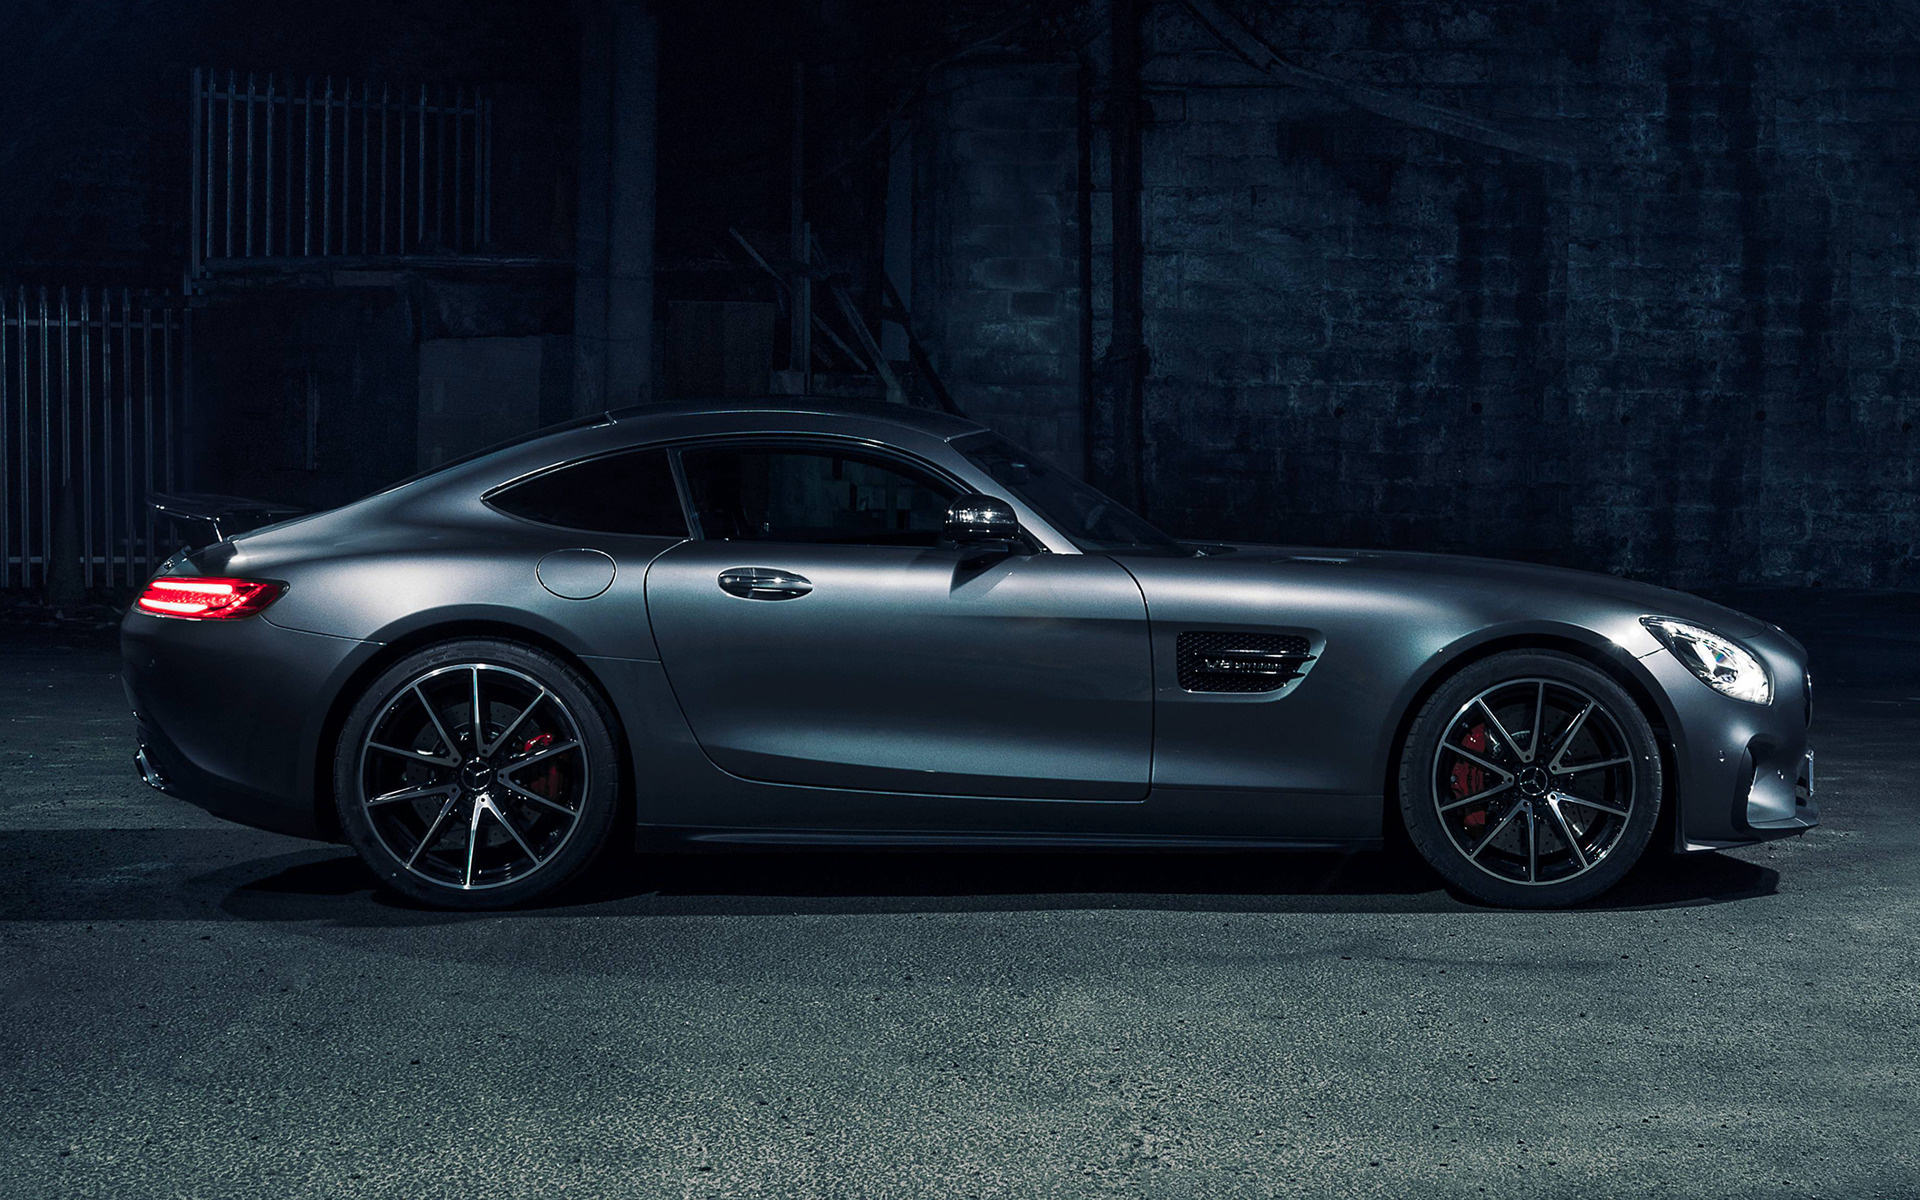 Mercedes Amg Gt S Edition 1 2015 Uk Wallpapers And Hd